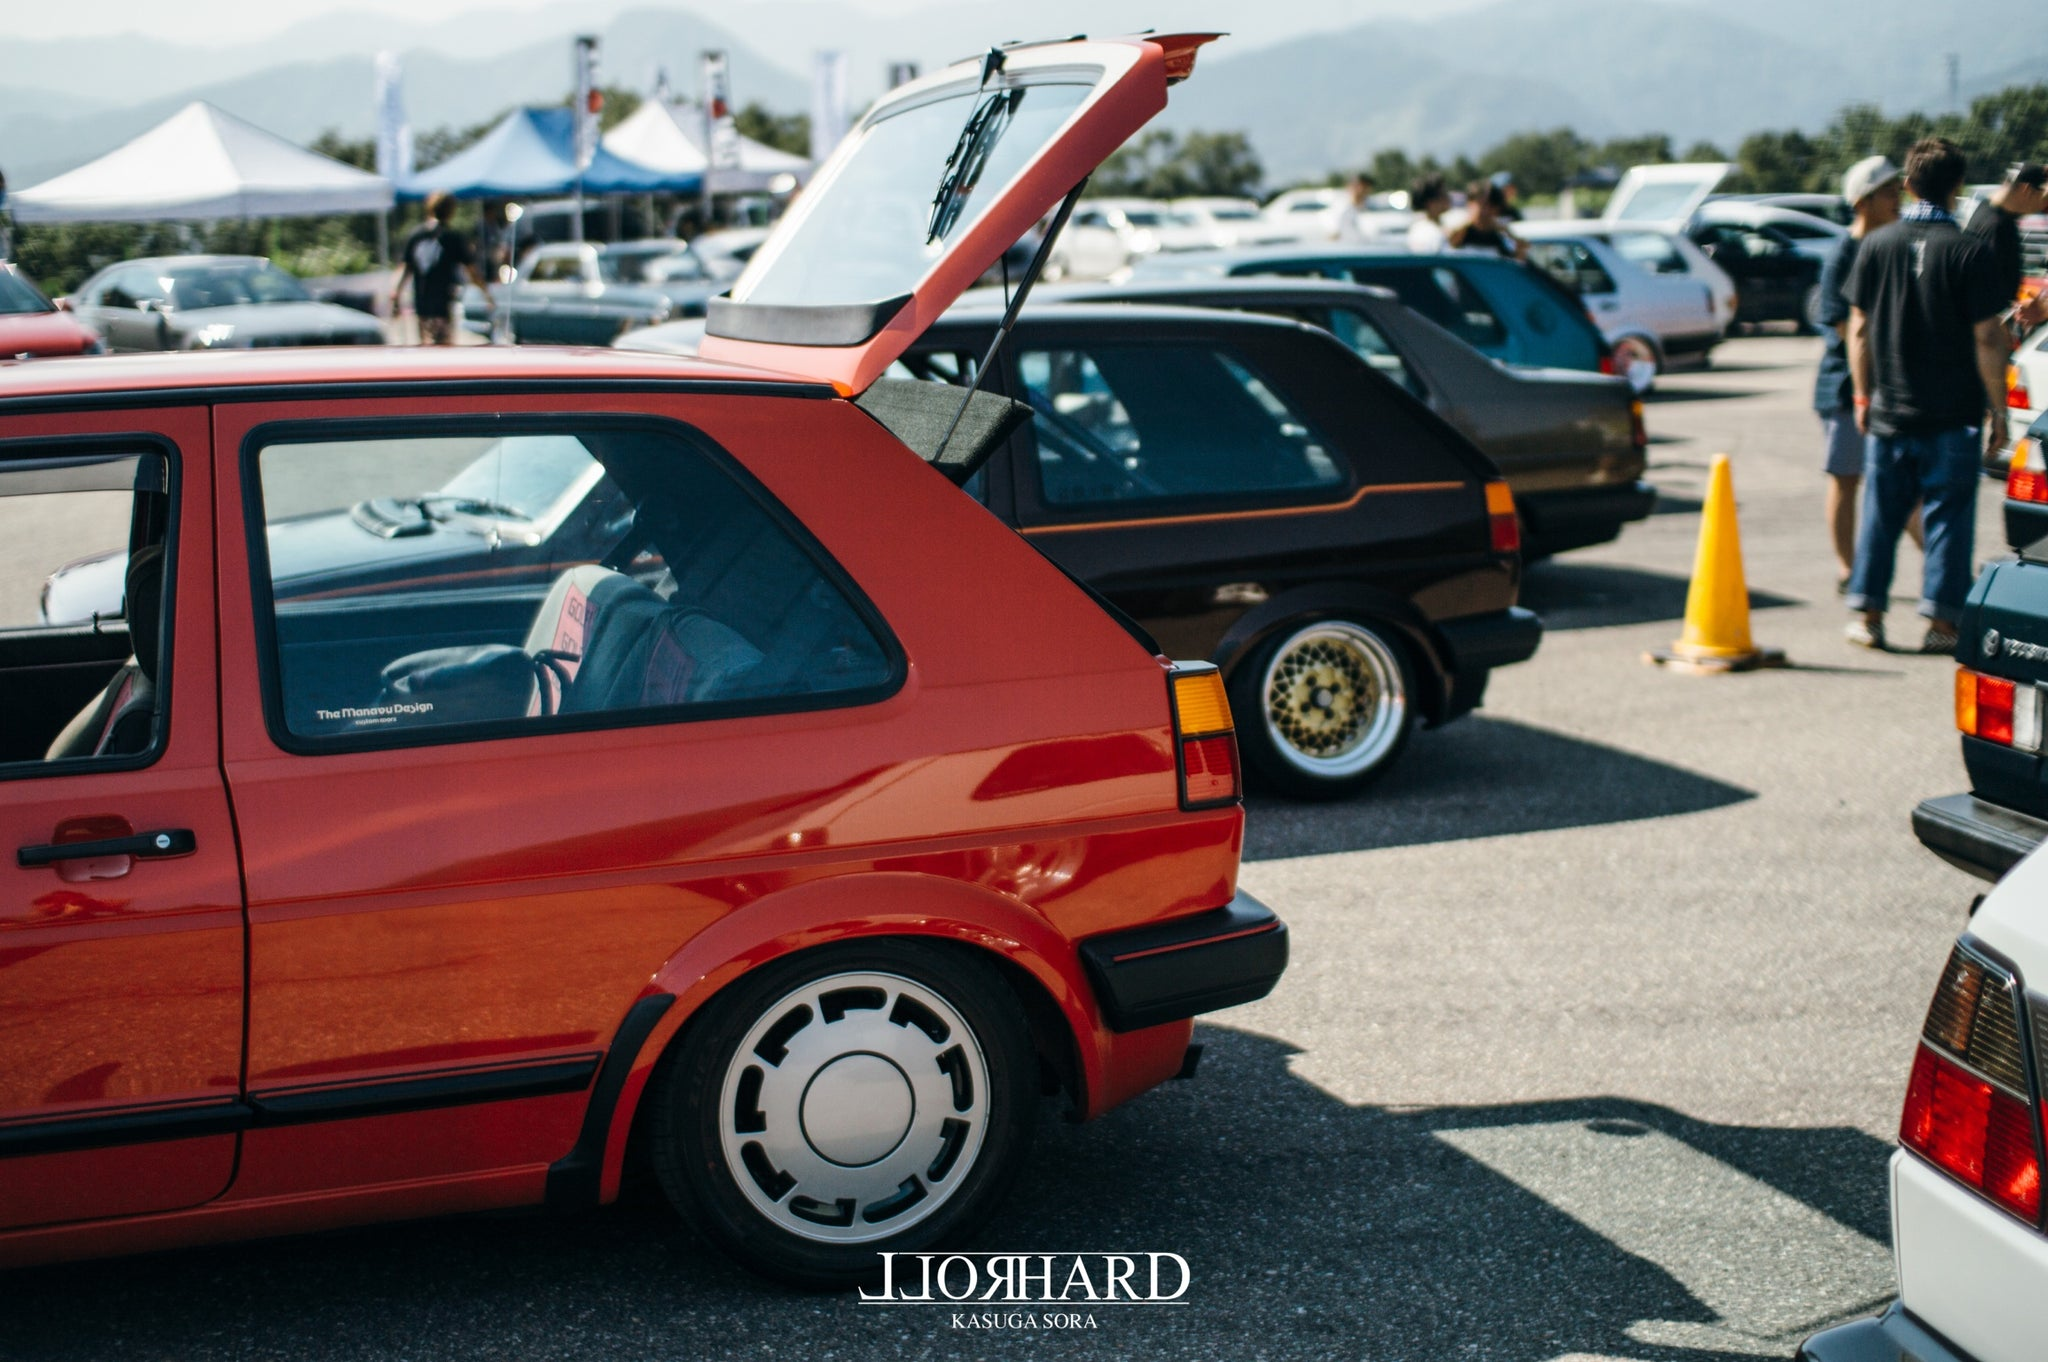 "RollHard Event Coverage - Wreckin' Meet 2018. Nanto-shi, Toyama, Japan. JDM, BBS RS, Schimdt TH, Euro style, Volkswagen, modified cars, japanese tuning scene"" />"